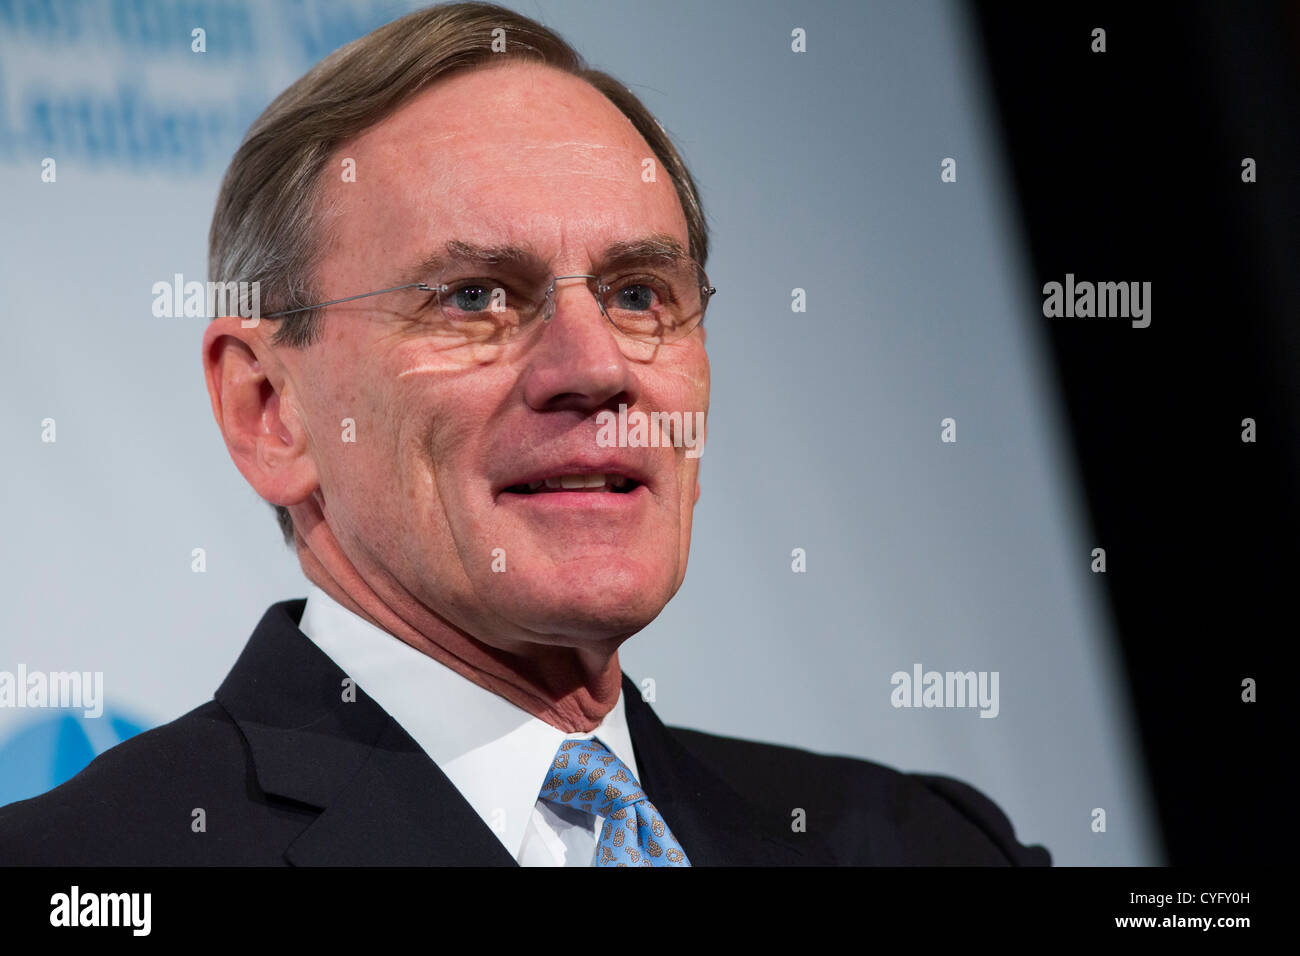 Jay Johnson, Chairman and CEO of General Dynamics Corportation.  - Stock Image